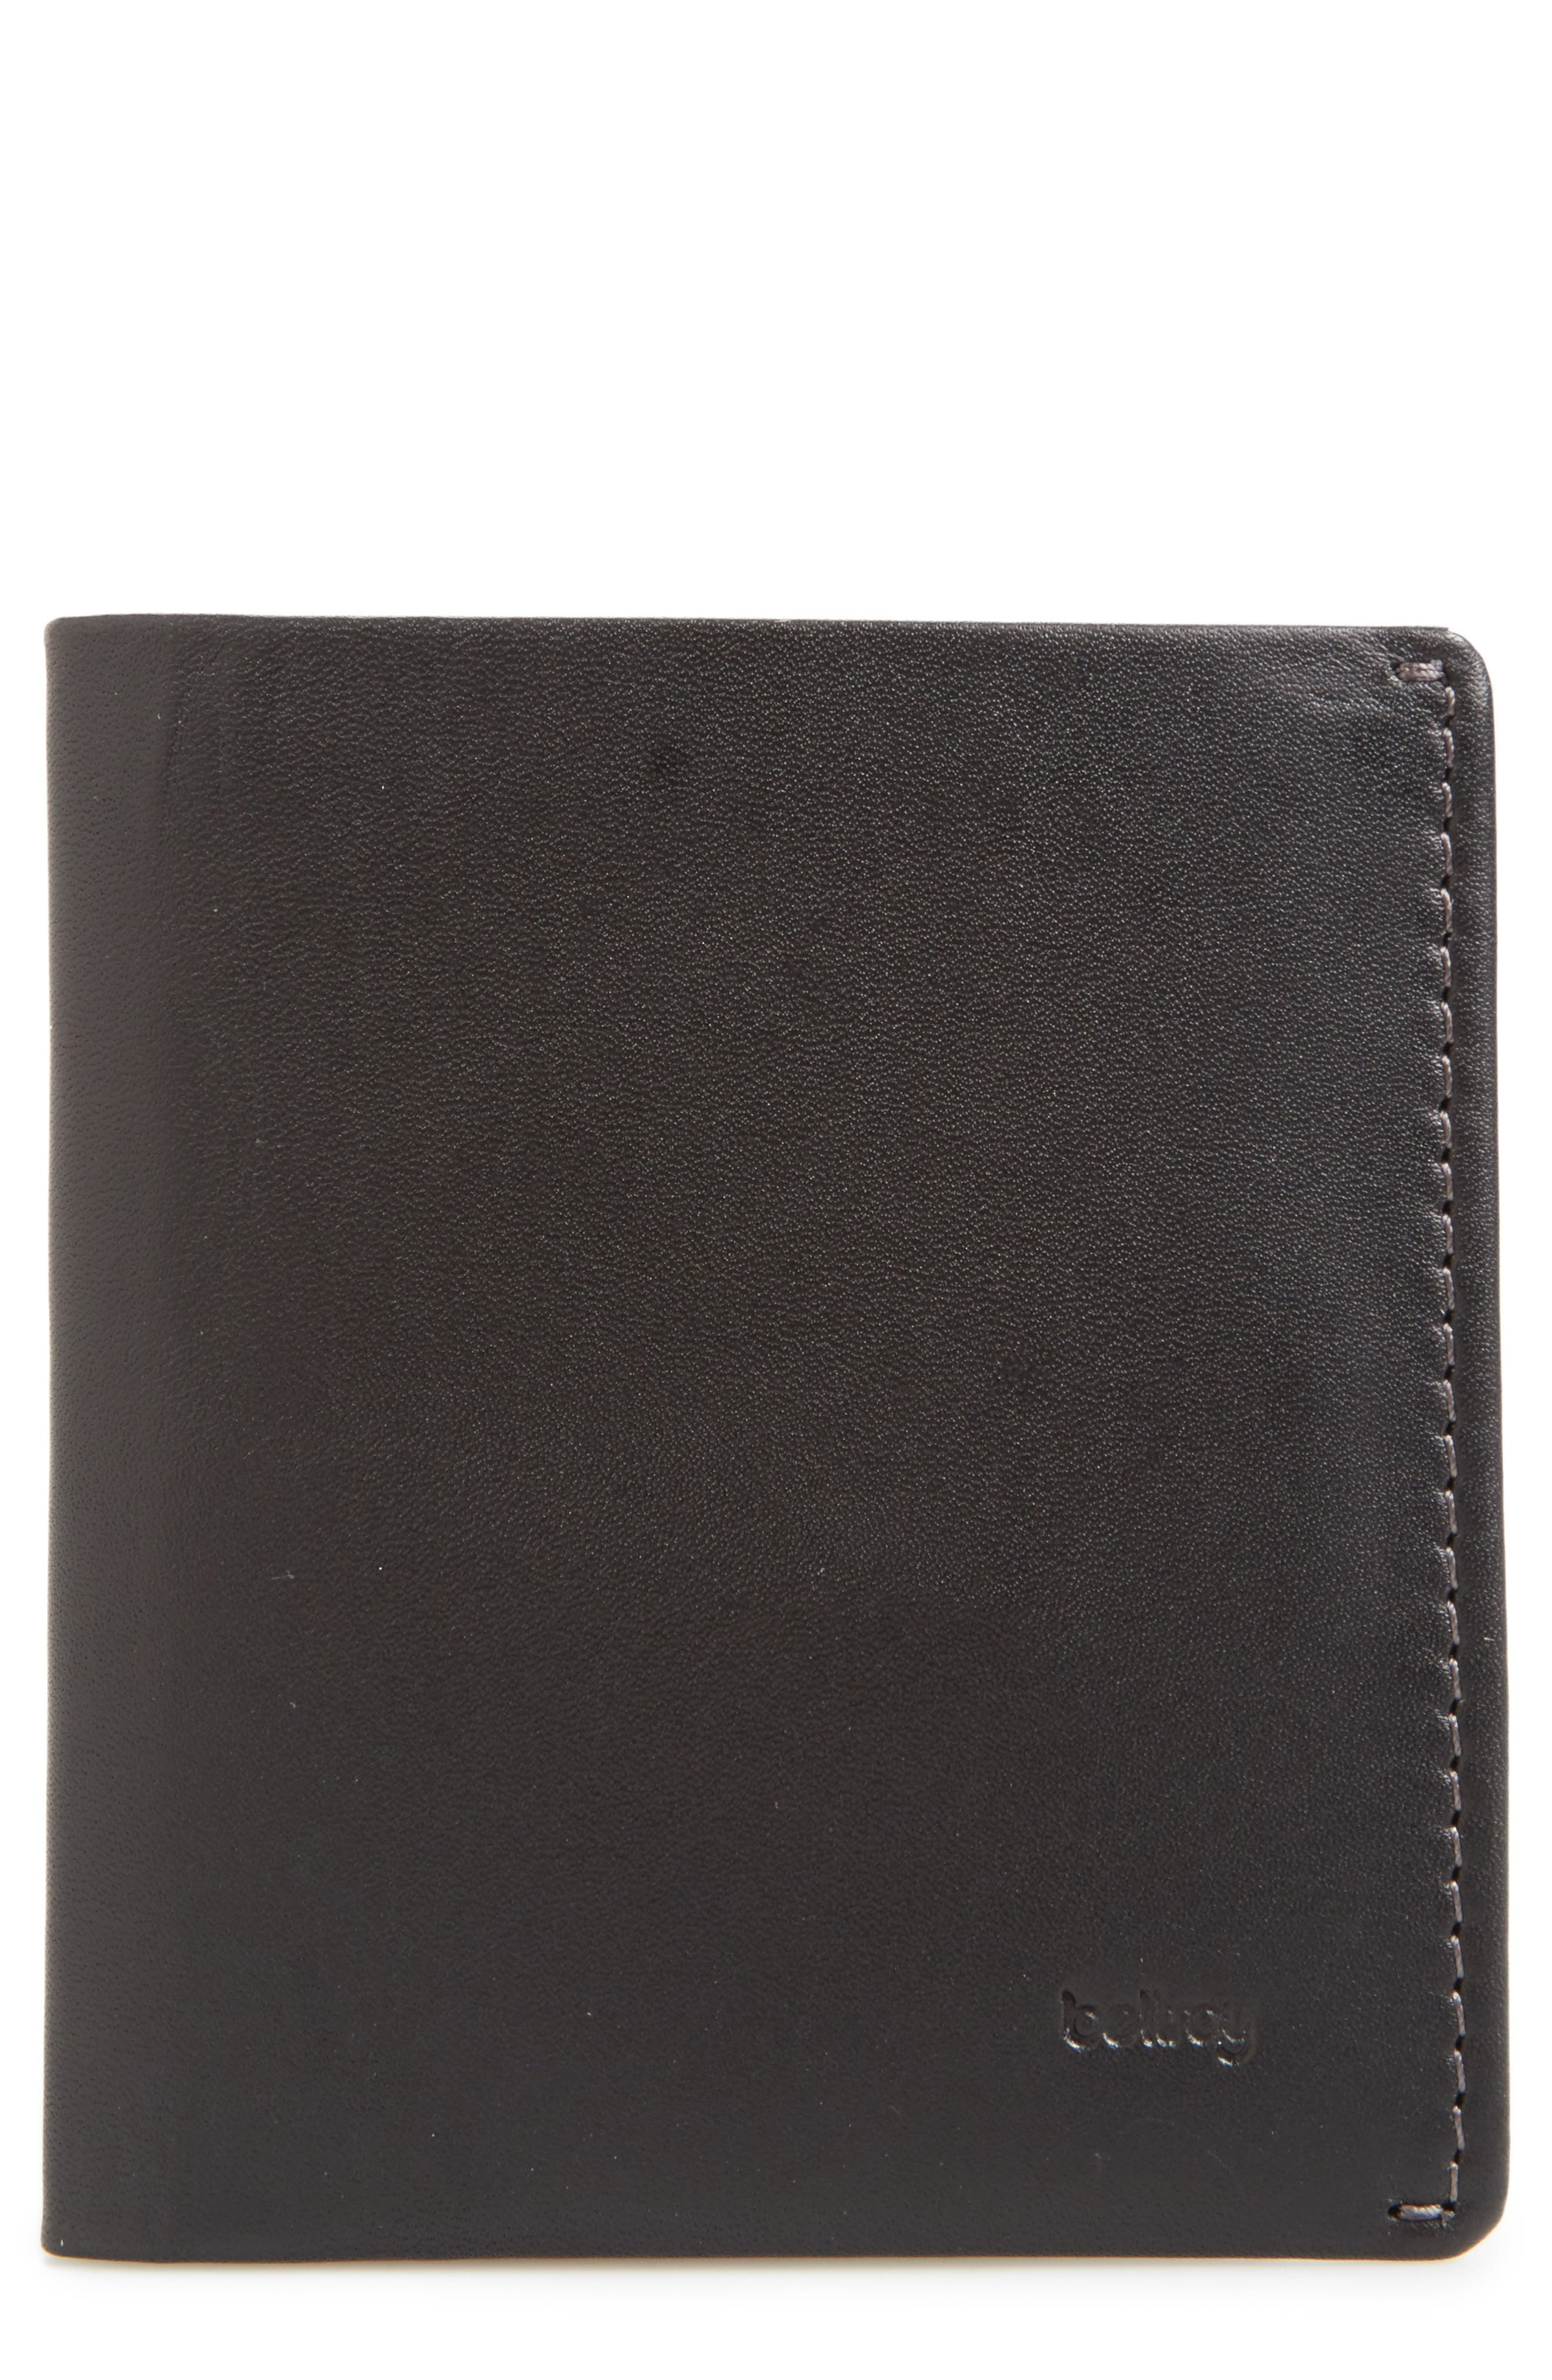 Main Image - Bellroy Note Sleeve Wallet